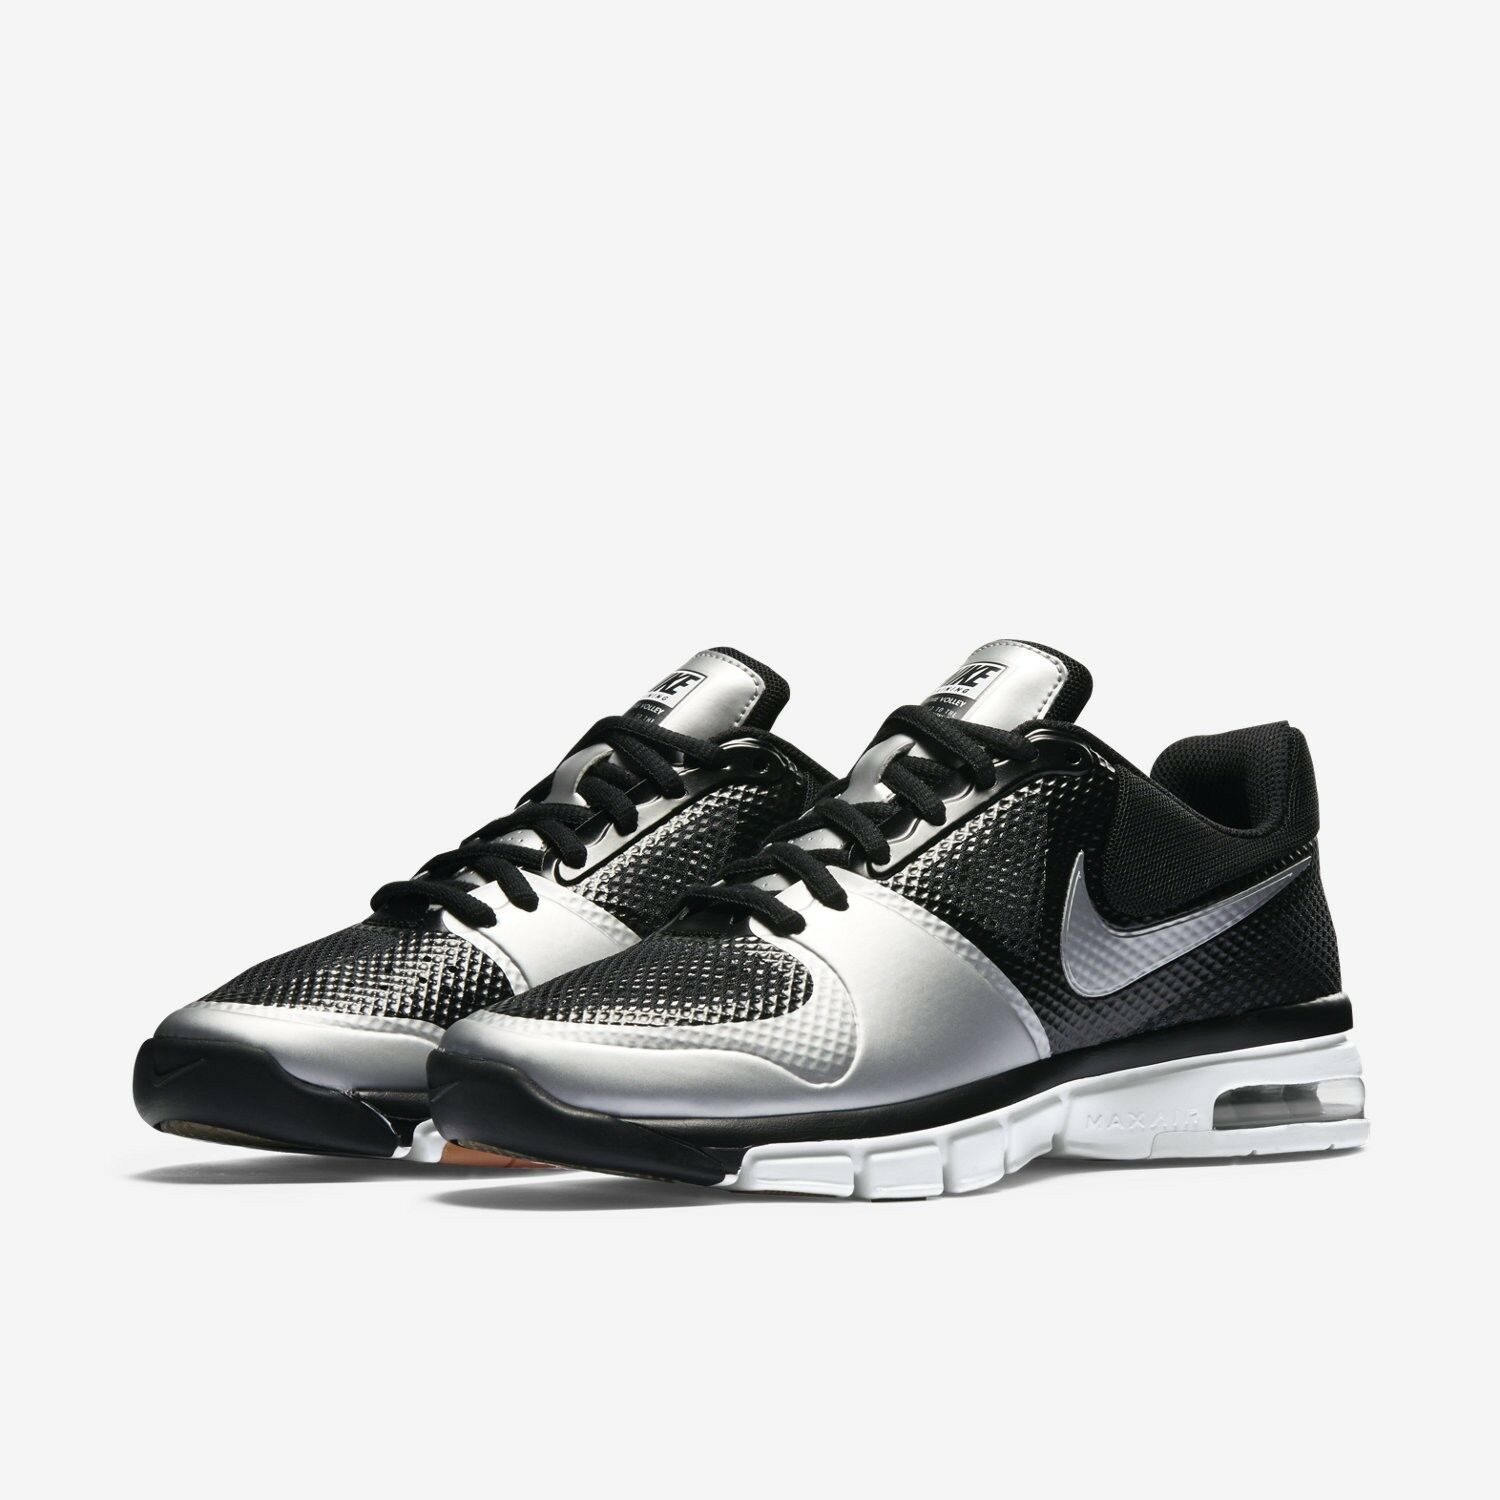 NEW Nike 442249 001 Air Extreme VOLLEY Black Silver VOLLEYBALL shoes Wom 12 ANB